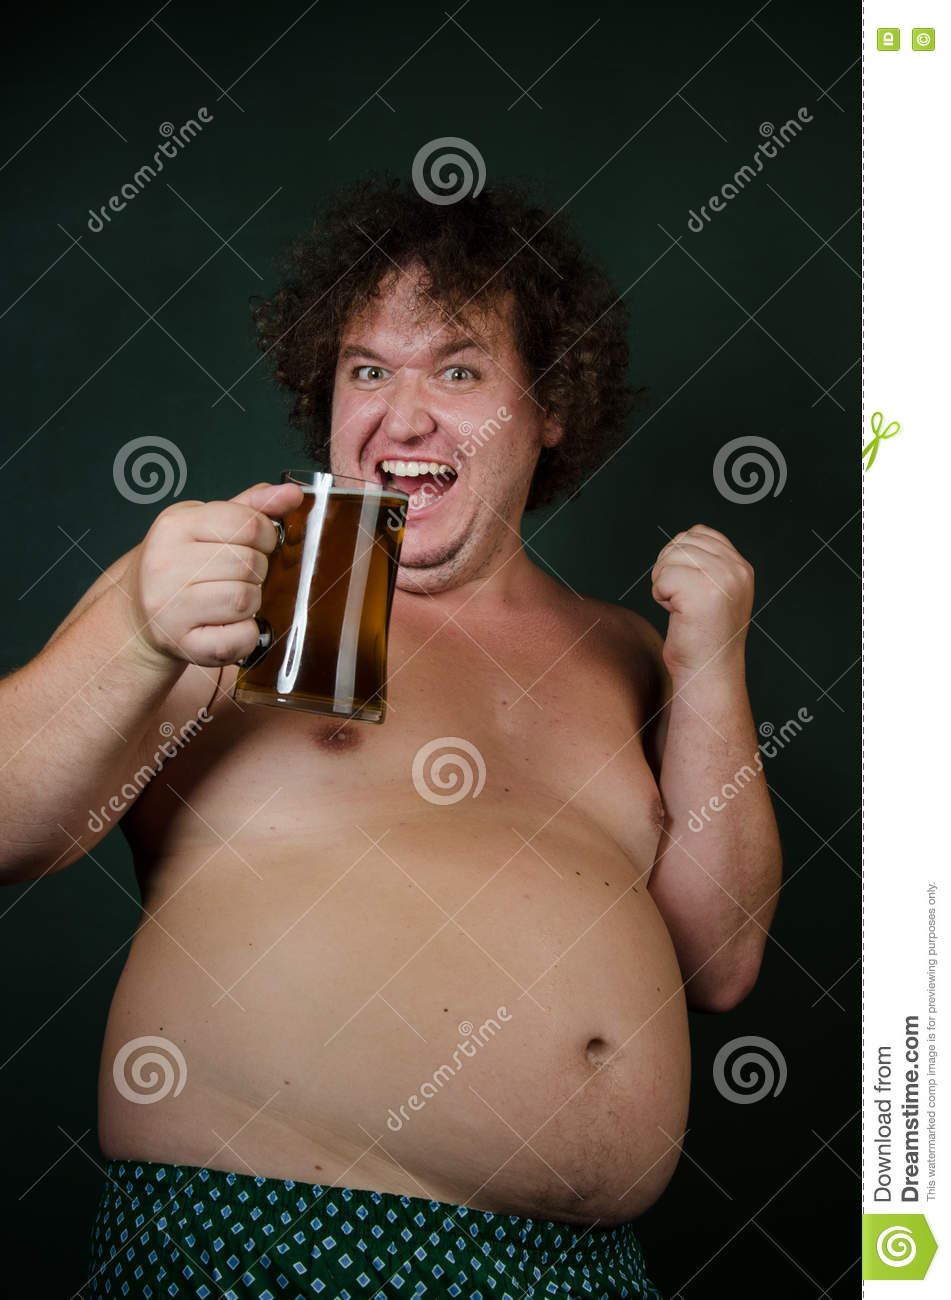 Fat drunk guy images